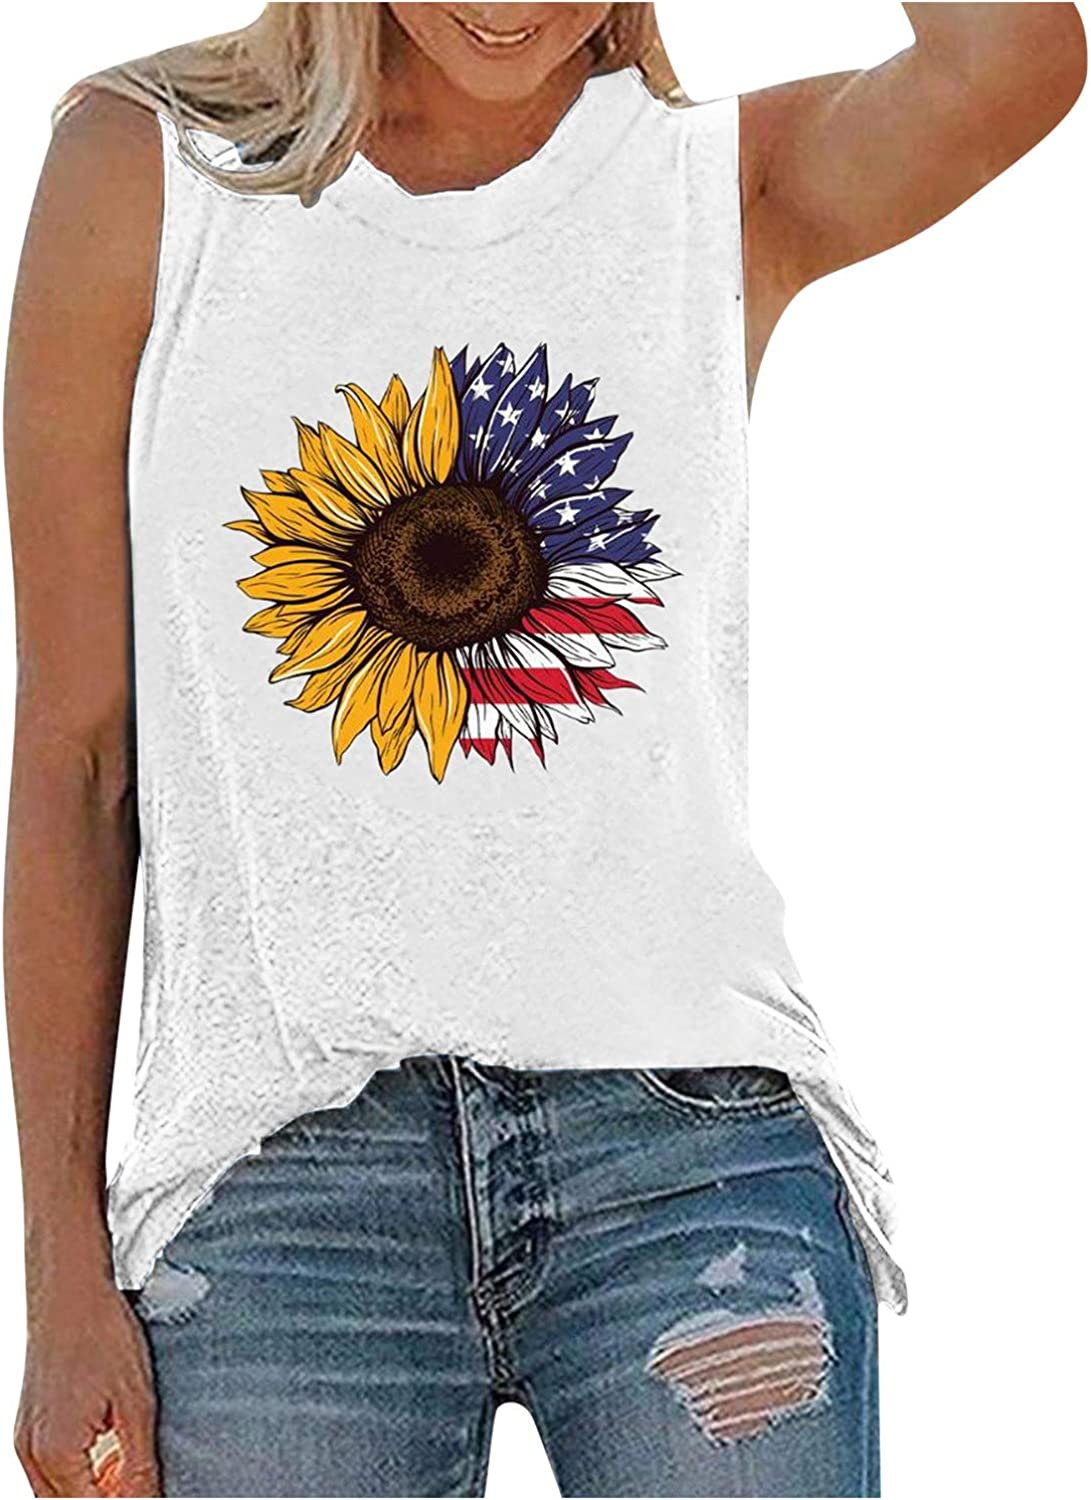 Cute Tops for Women Trendy Blouse,Women's American Flag Tank Tops 4th of July Camo Tee Summer Loose Sleeveless Country Patriotic USA T Shirts